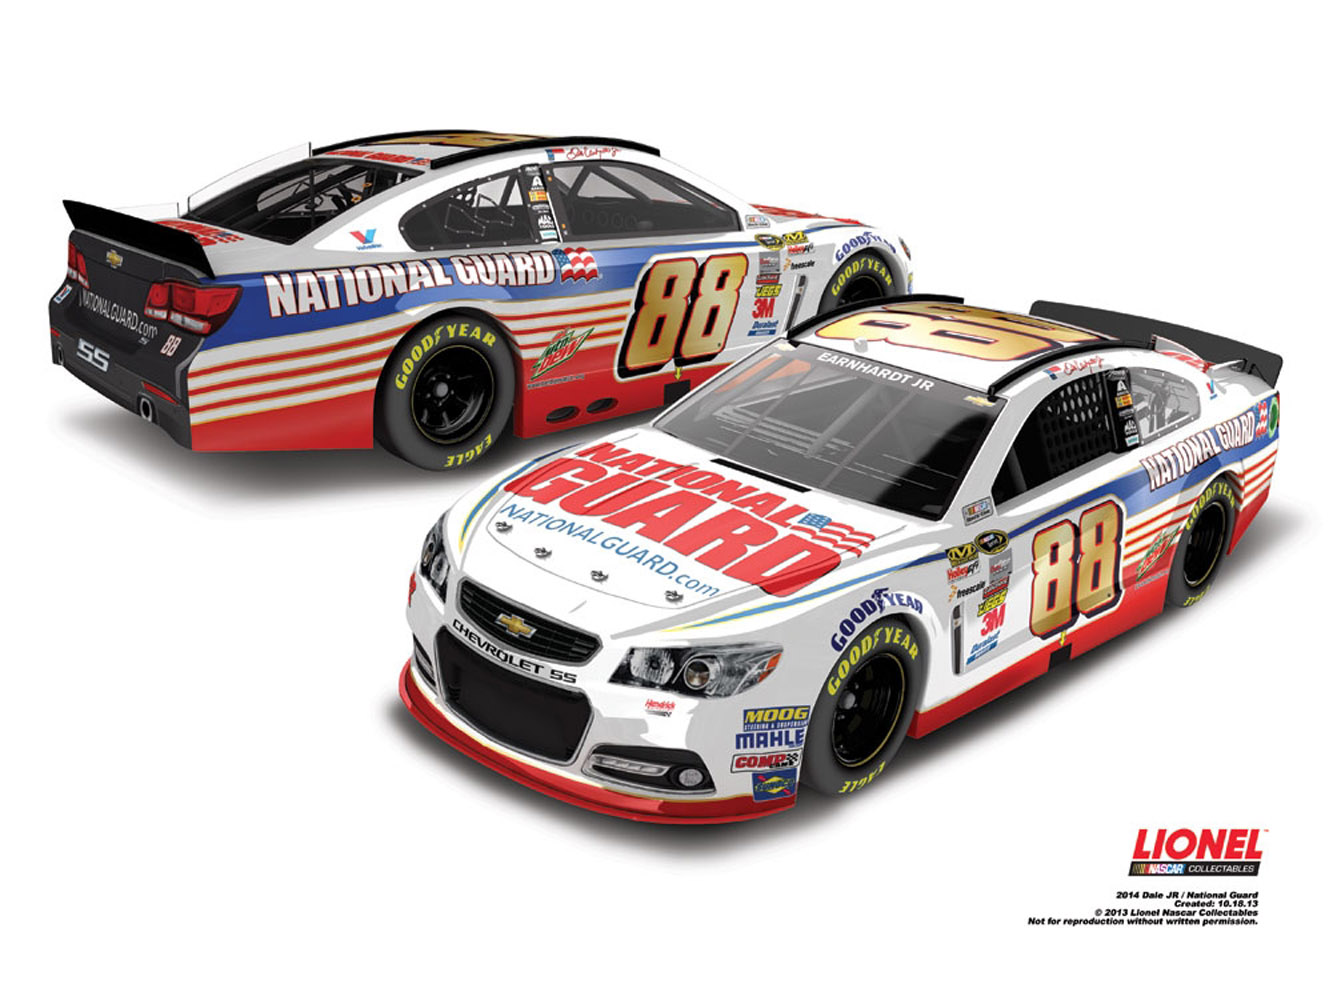 2014 Dale Earnhardt Jr #88 National Guard 1/64 Diecast Car